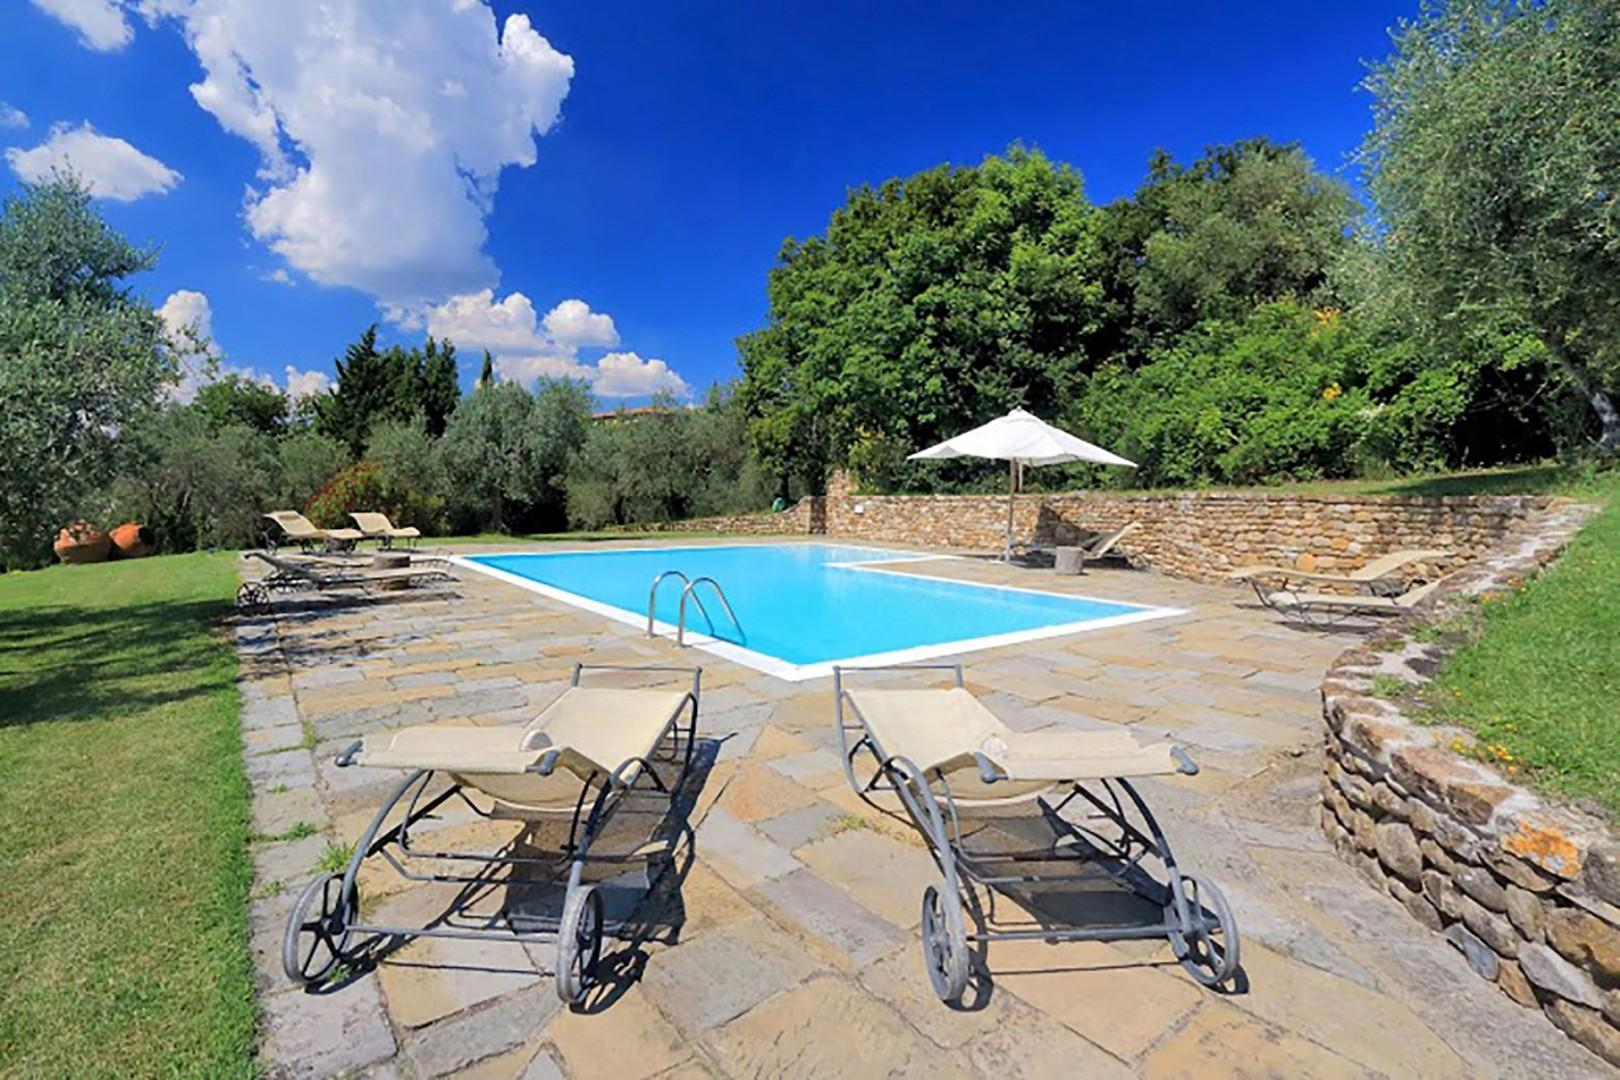 The villa has a private pool that is 5 x 10 meters or 16 x 33 feet.